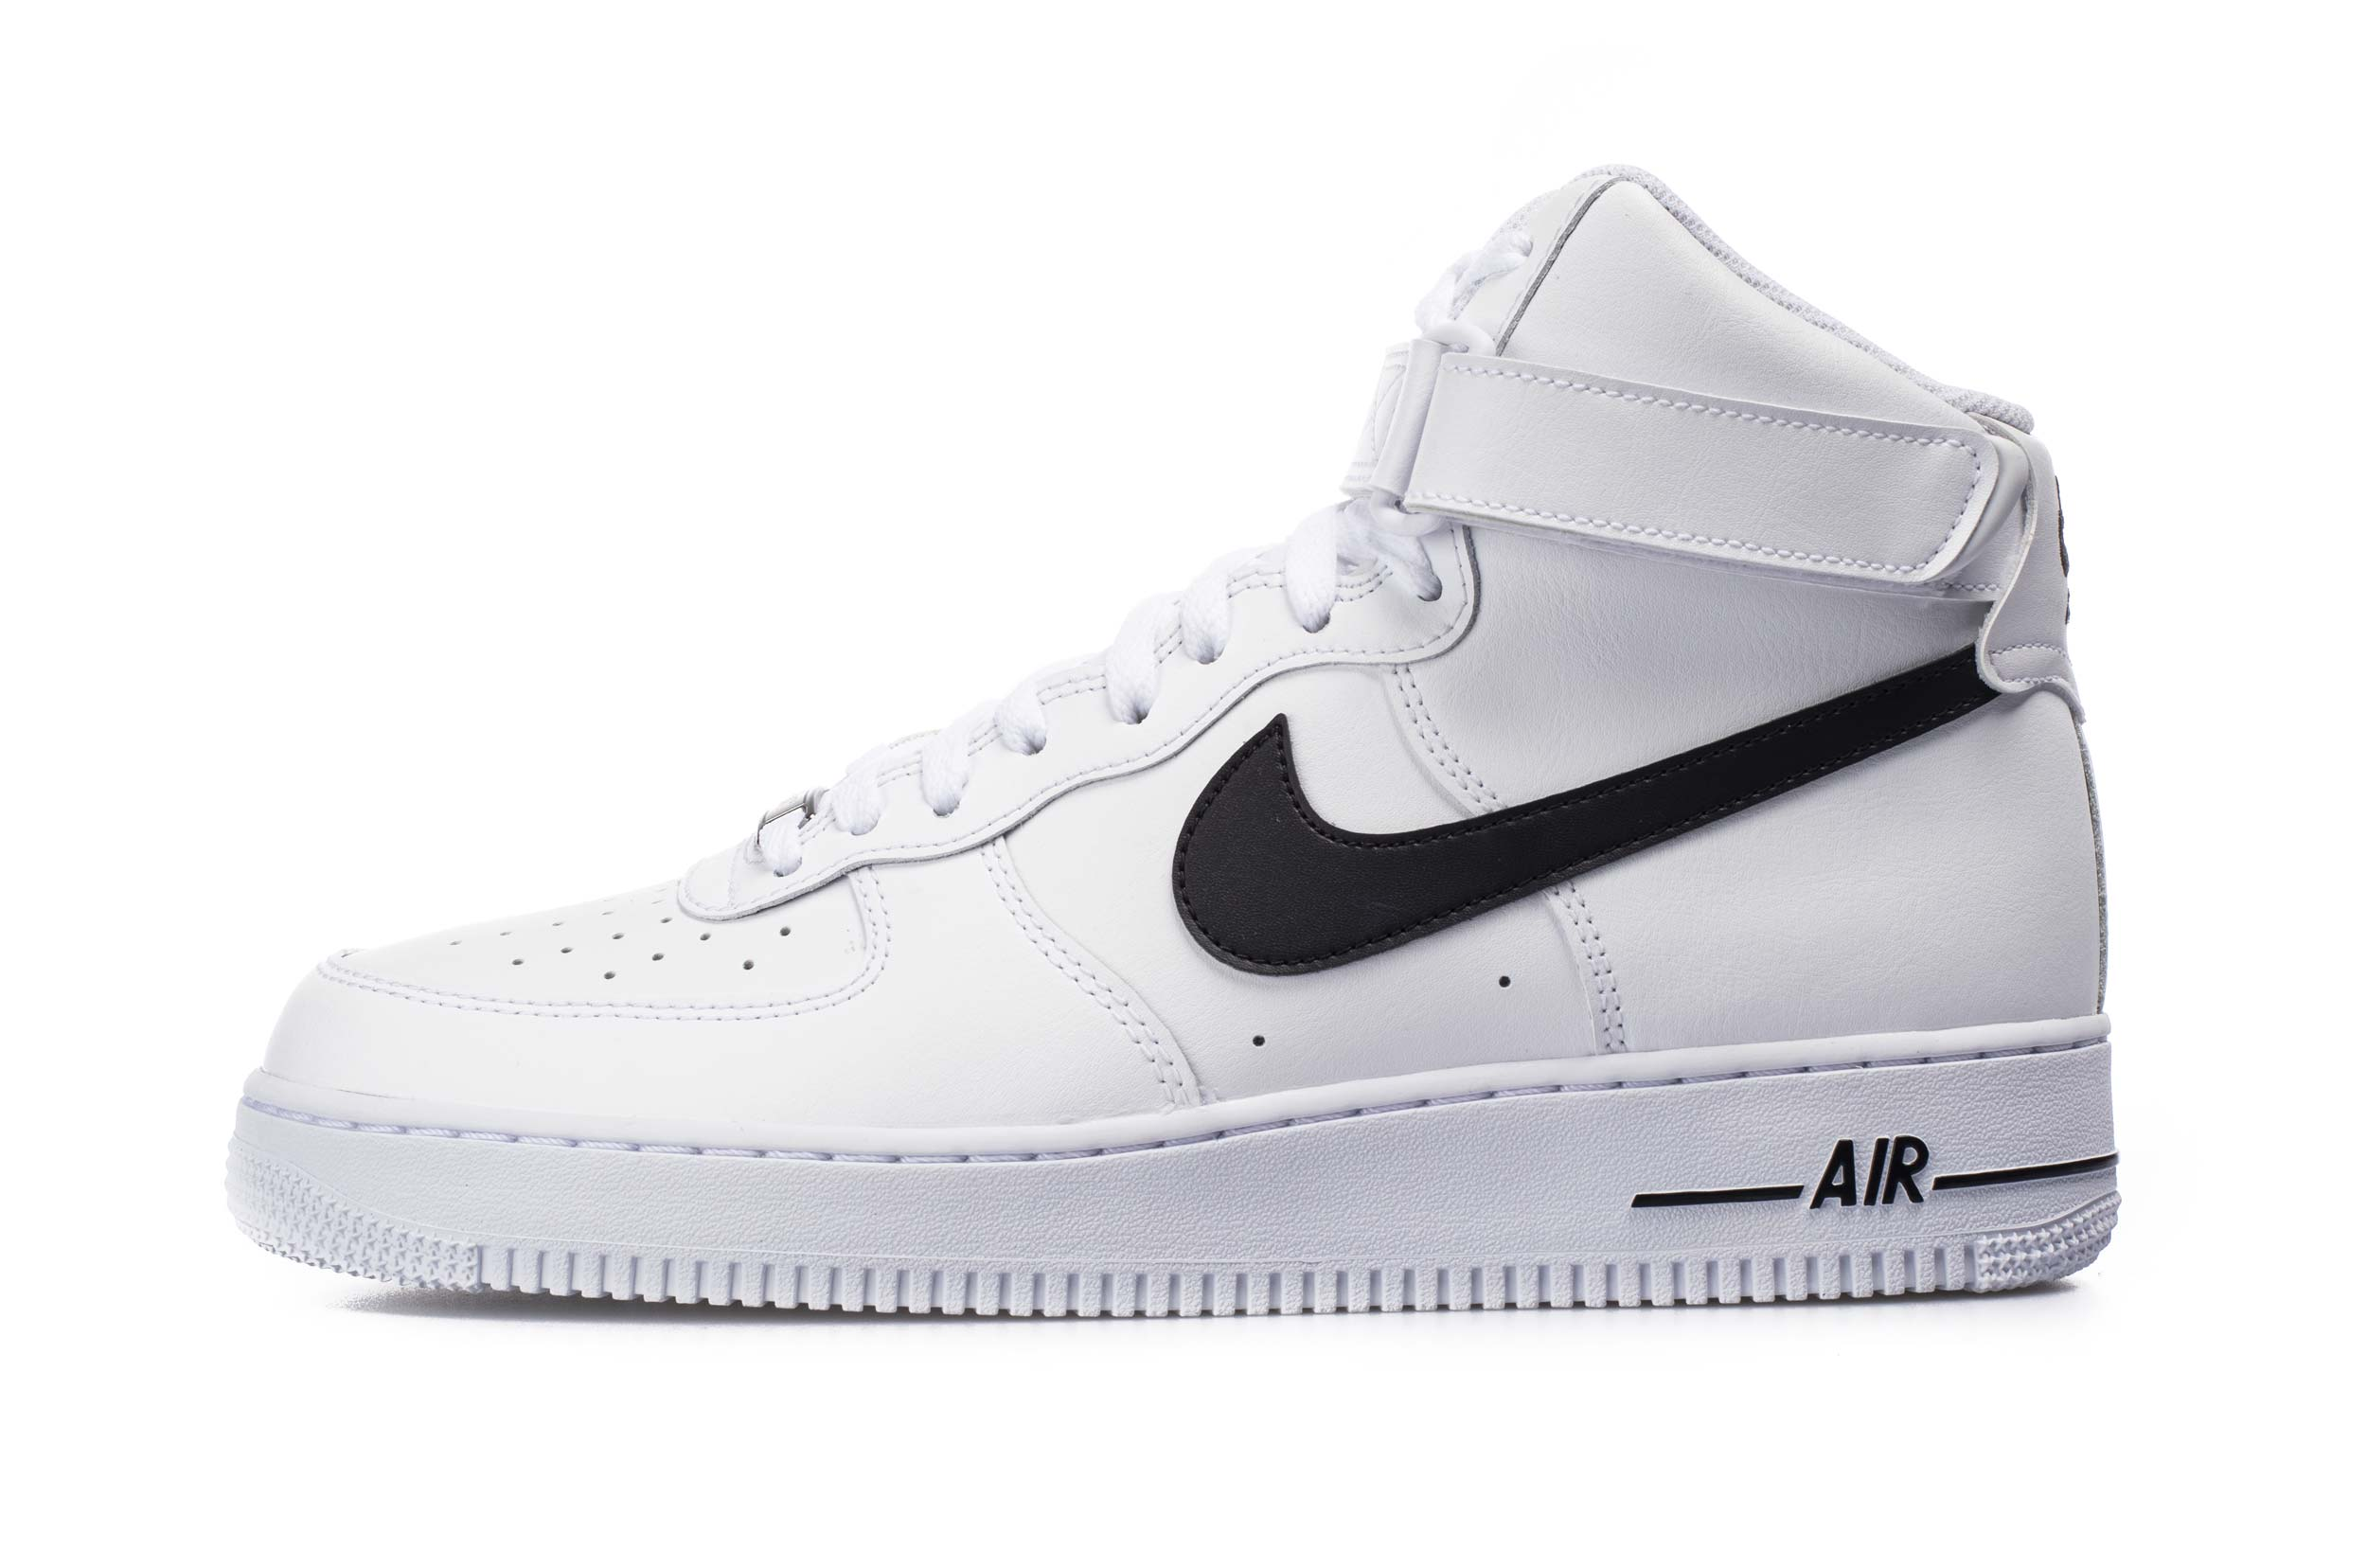 NIKE AIR FORCE 1 HIGH '07 CK4369-100 Λευκό